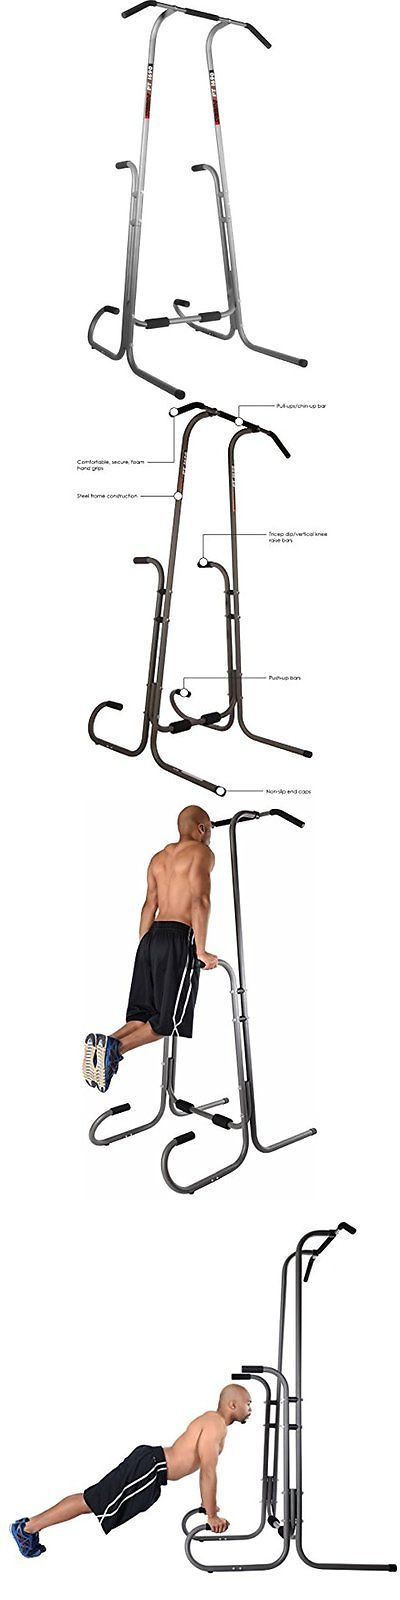 Push Up Stands 158925: Strength Training Equipment Stamina 1690 Power Tower Greyb Yoga Strength Push Up -> BUY IT NOW ONLY: $155.48 on eBay!